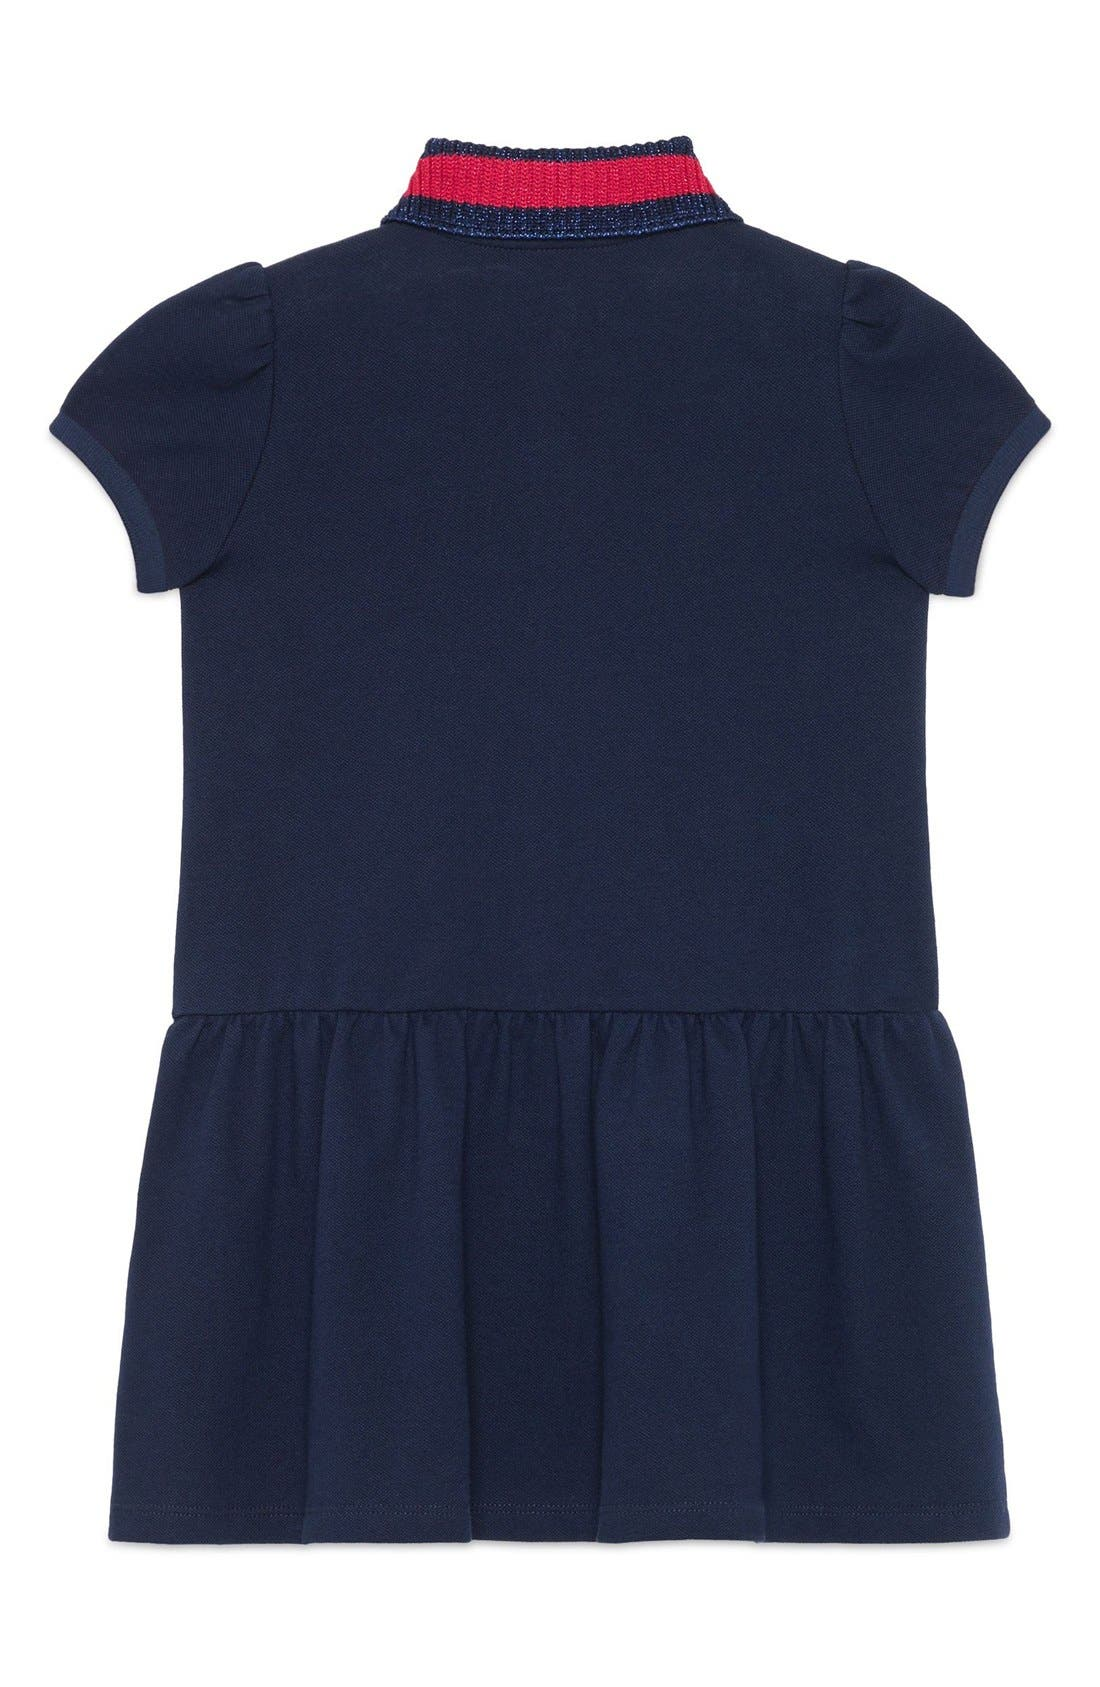 Alternate Image 2  - Gucci Embroidered Dress (Little Girls & Big Girls)